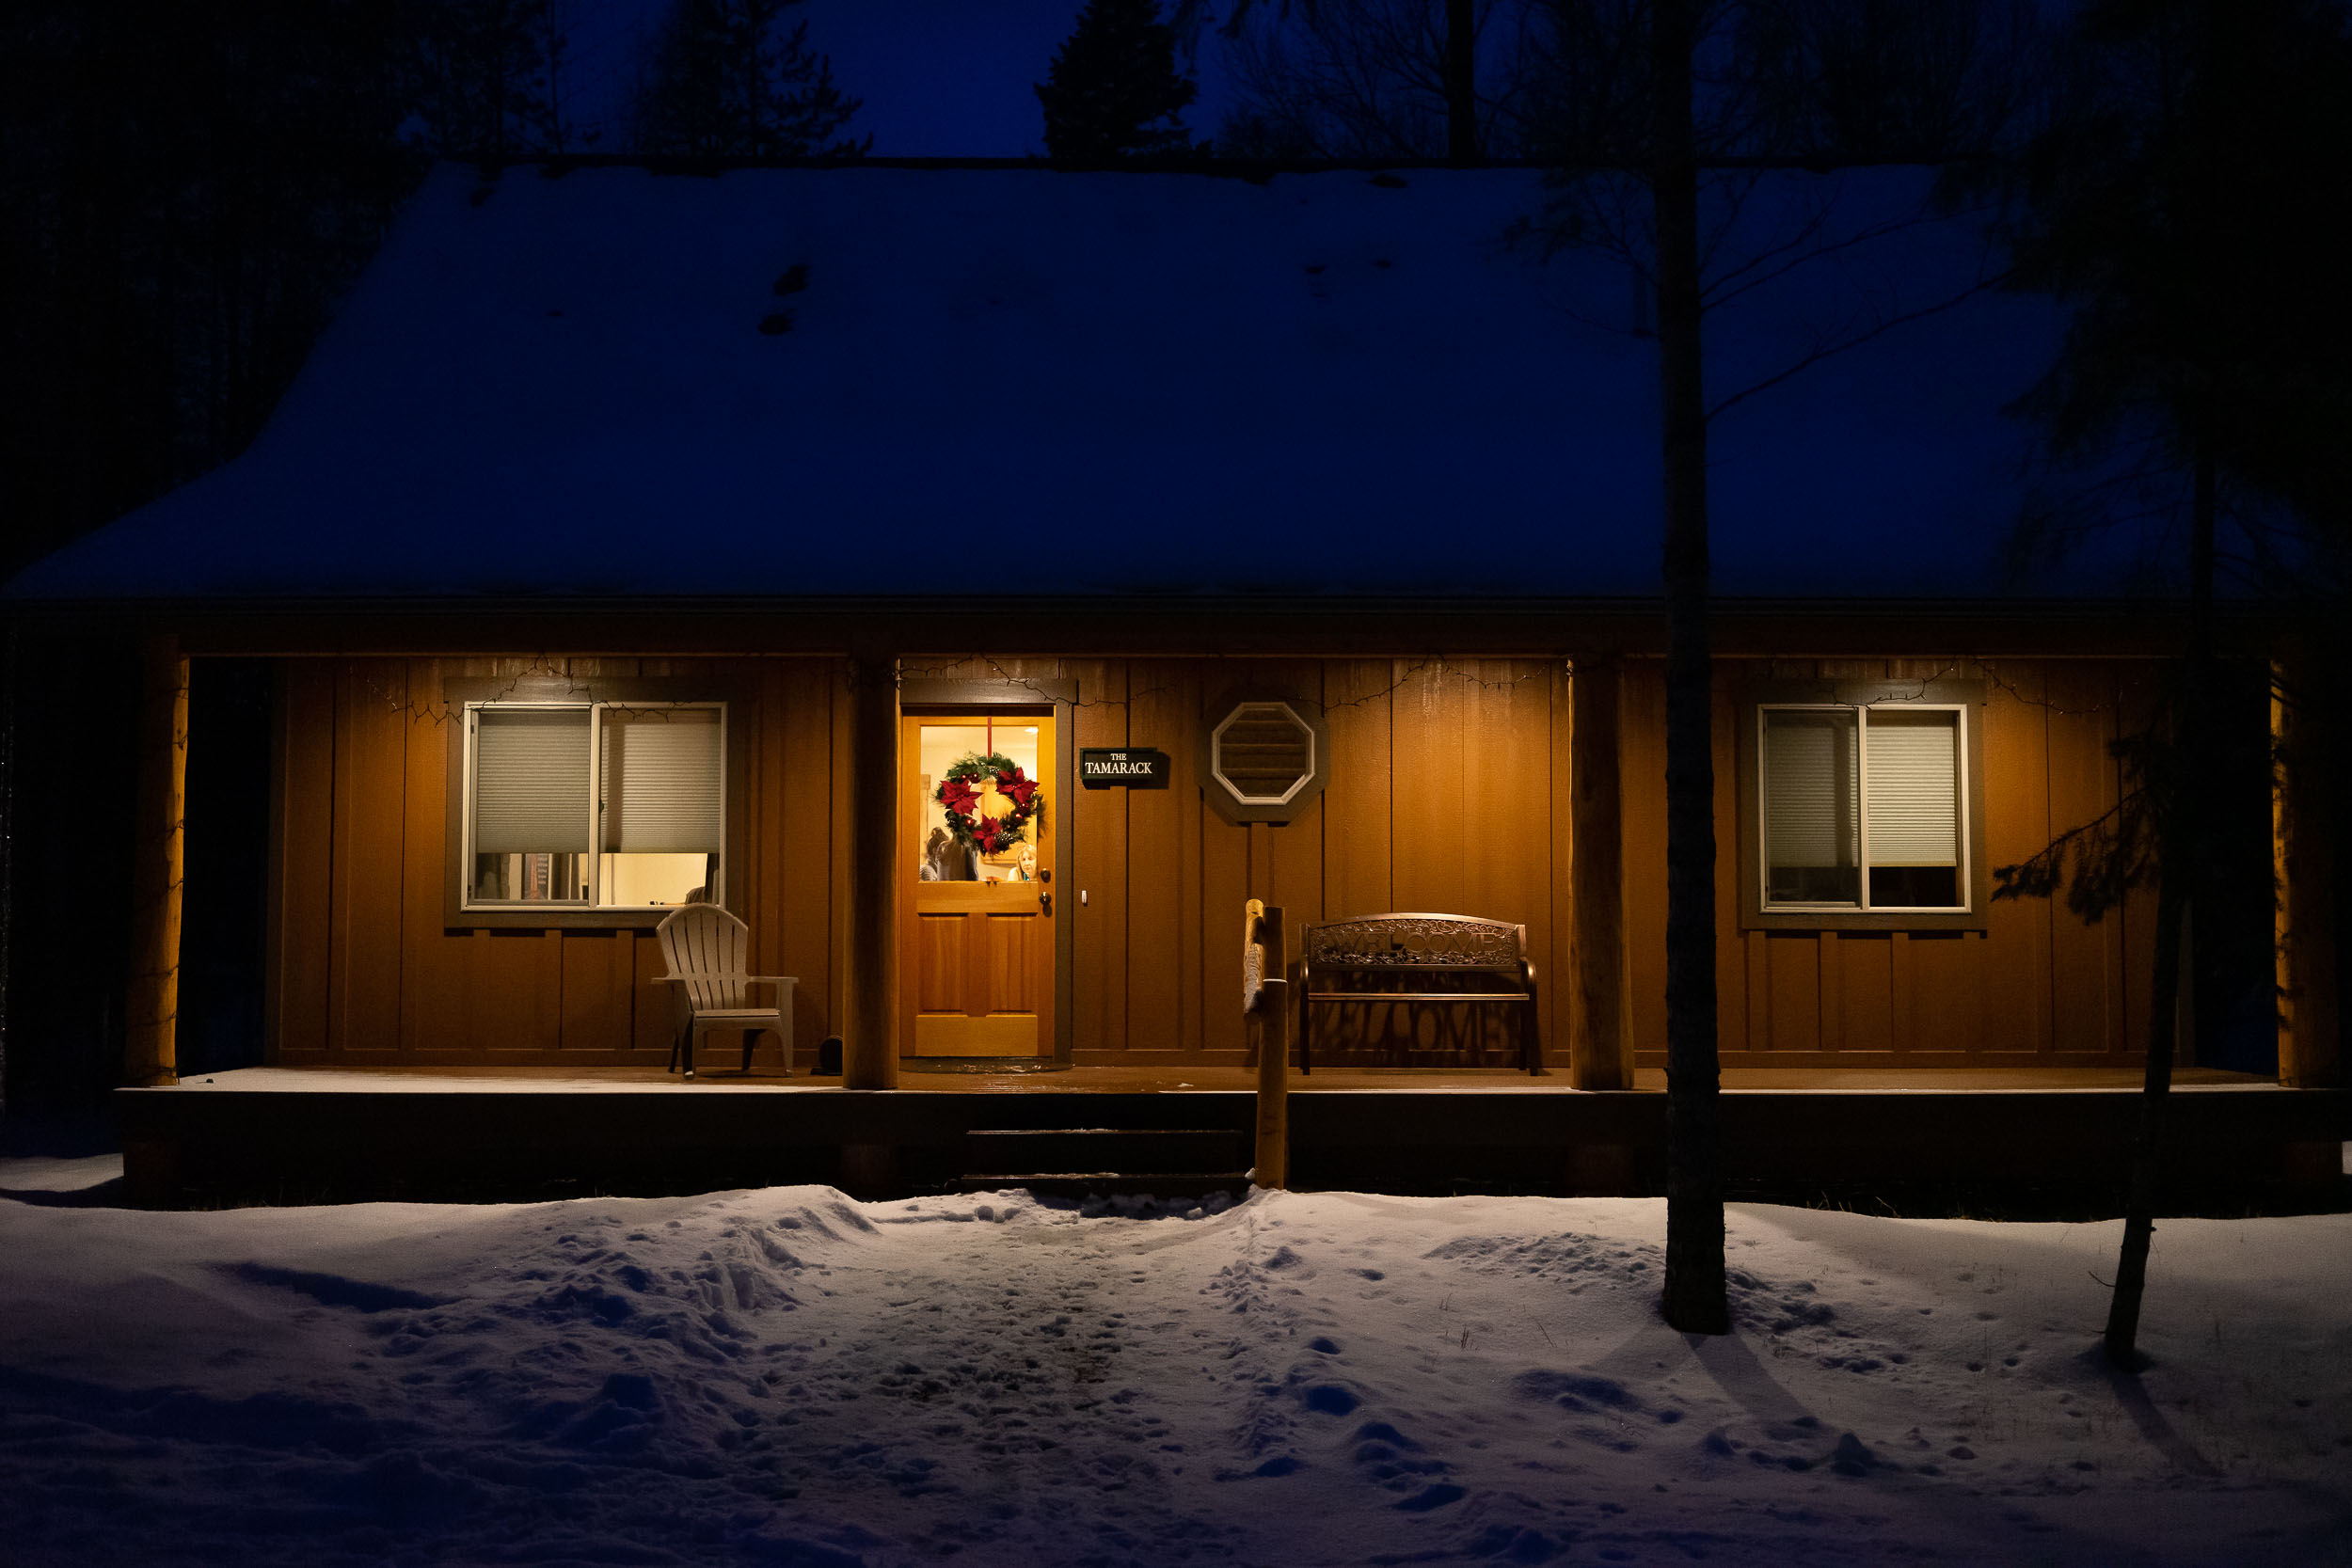 The cutest little snowy cabin near Whitefish, Montana at night.